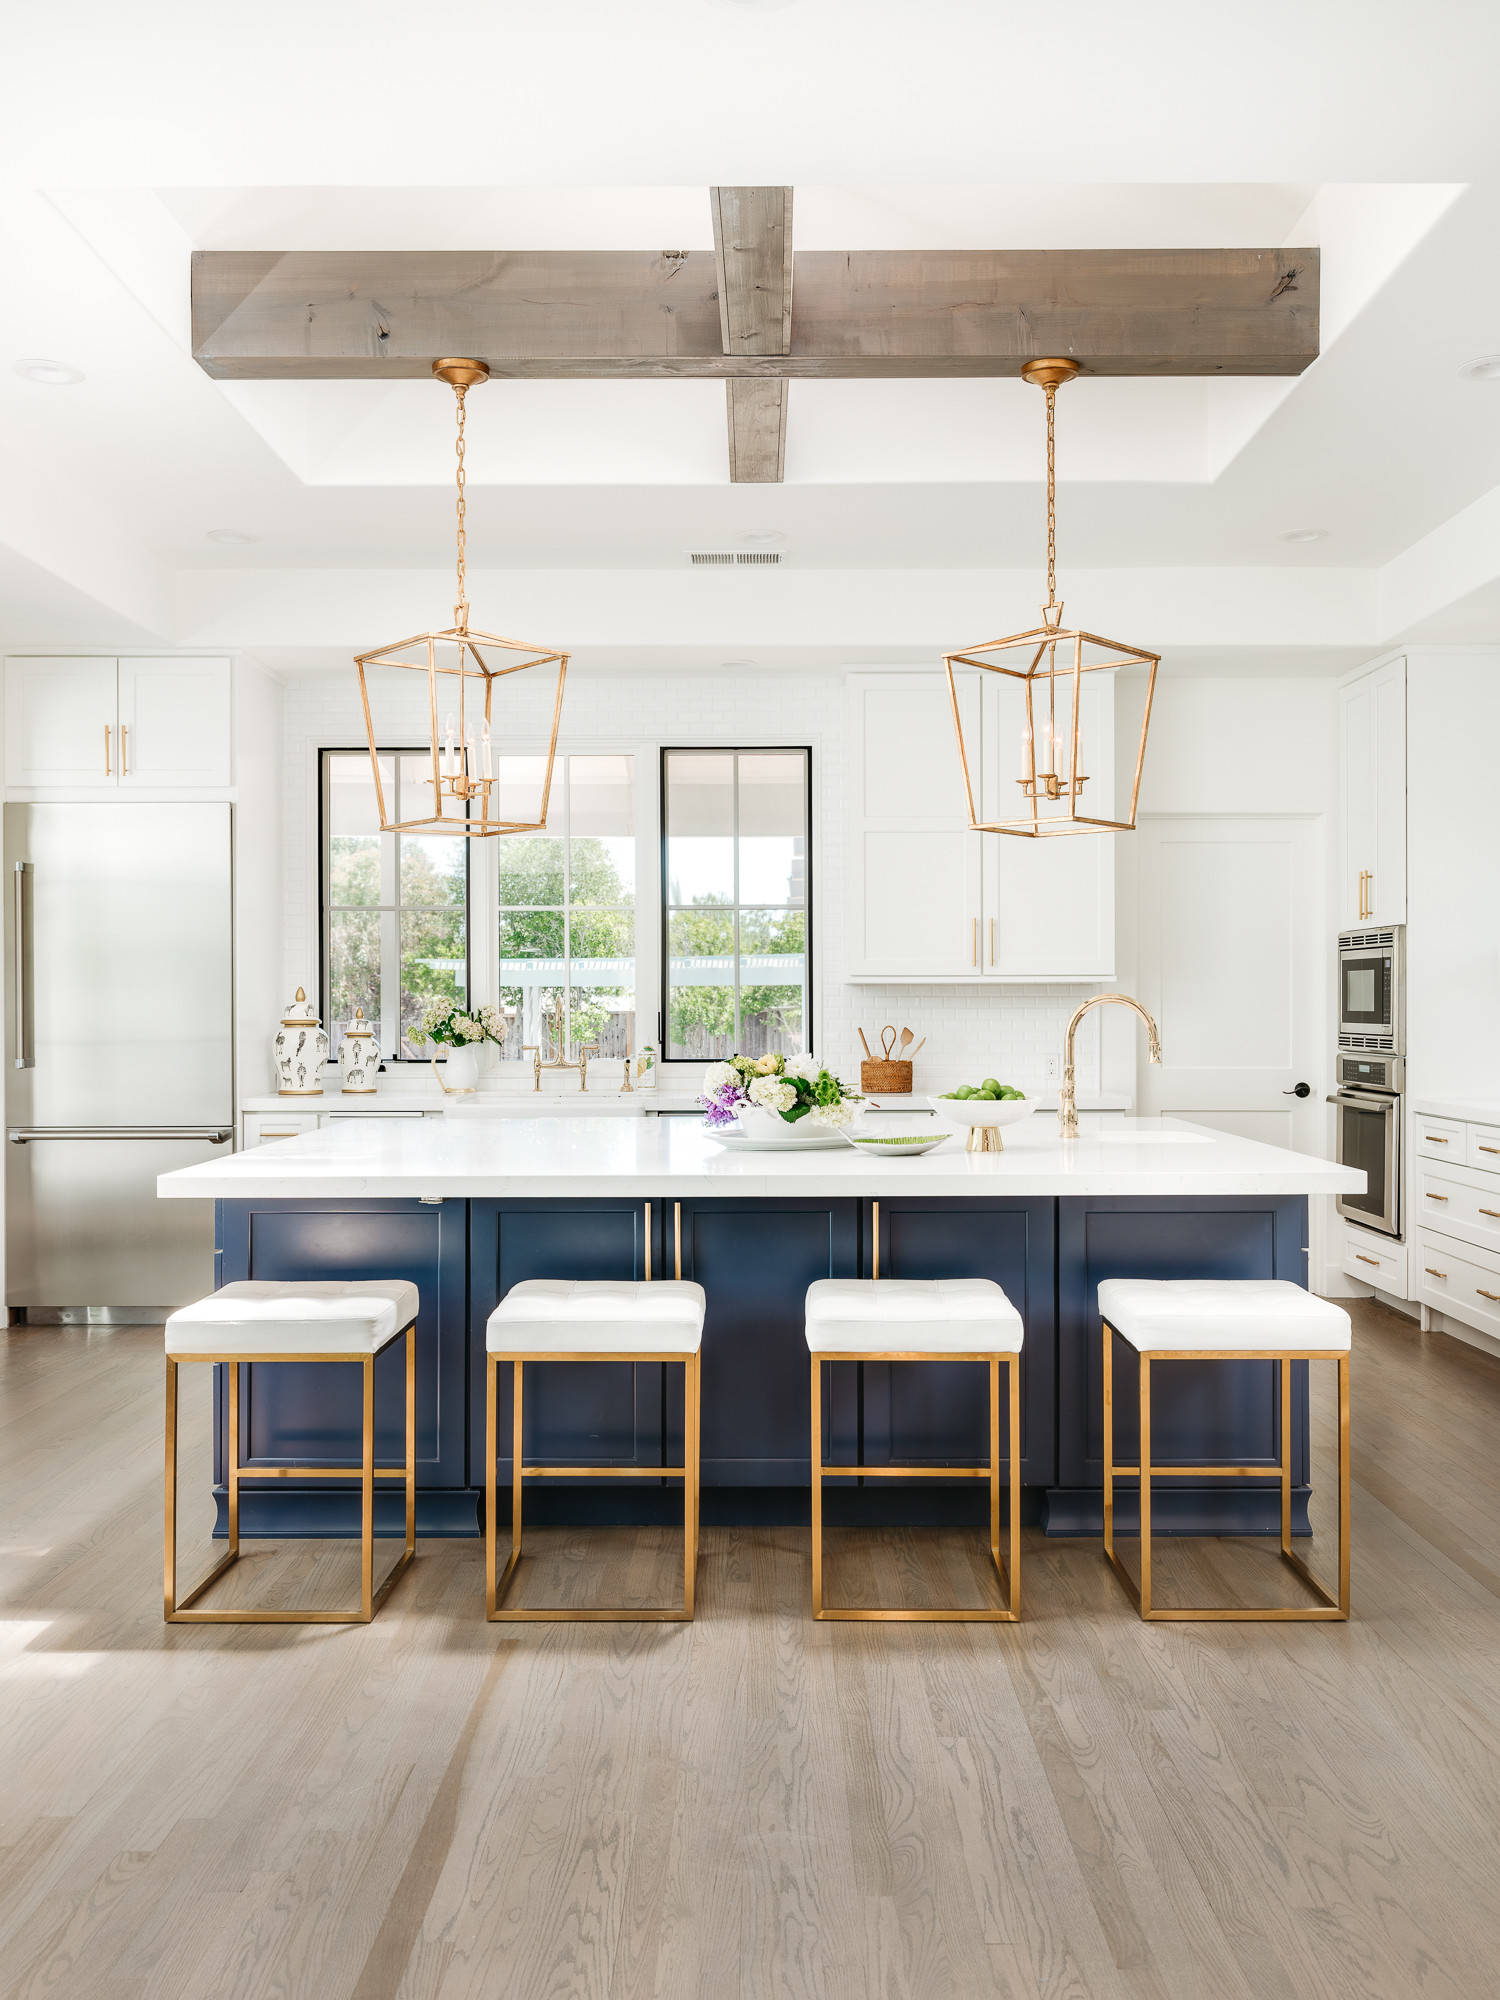 Sparkling-modern-kitchen-with-symmetry-and-style